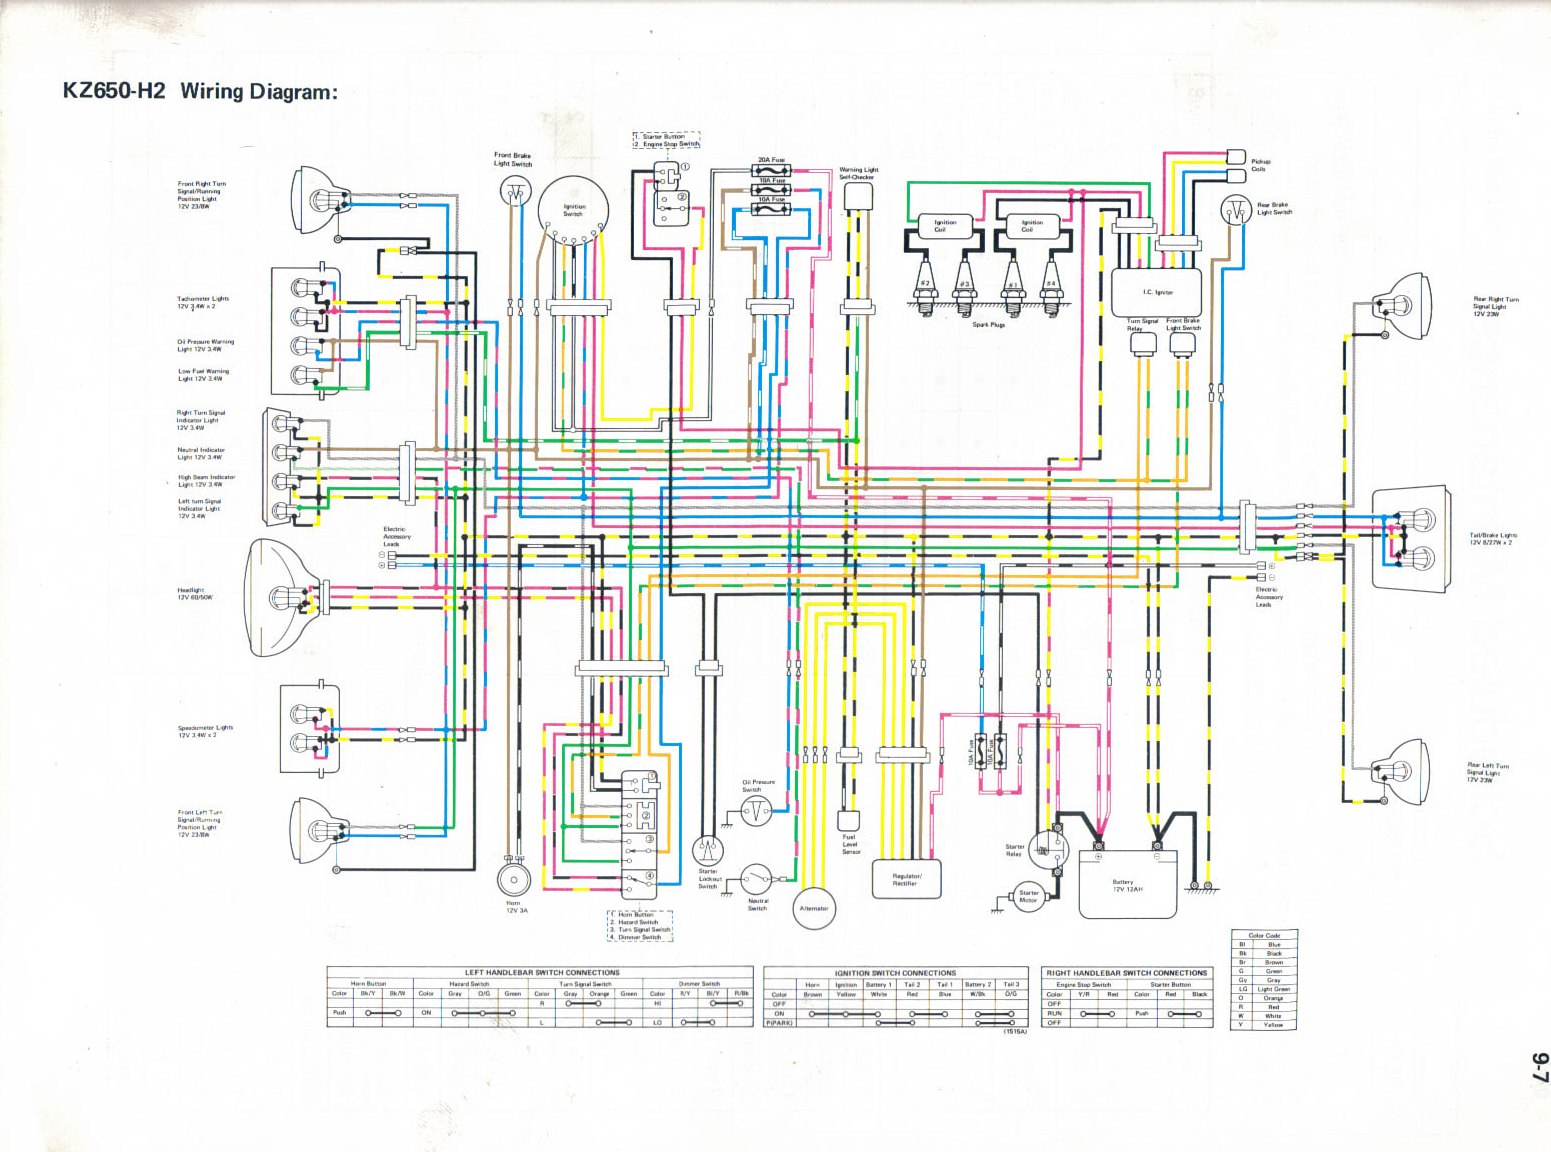 KZ650 H2 kawasaki z750 wiring diagram kawasaki wiring diagrams instruction kz750 wiring diagram at n-0.co